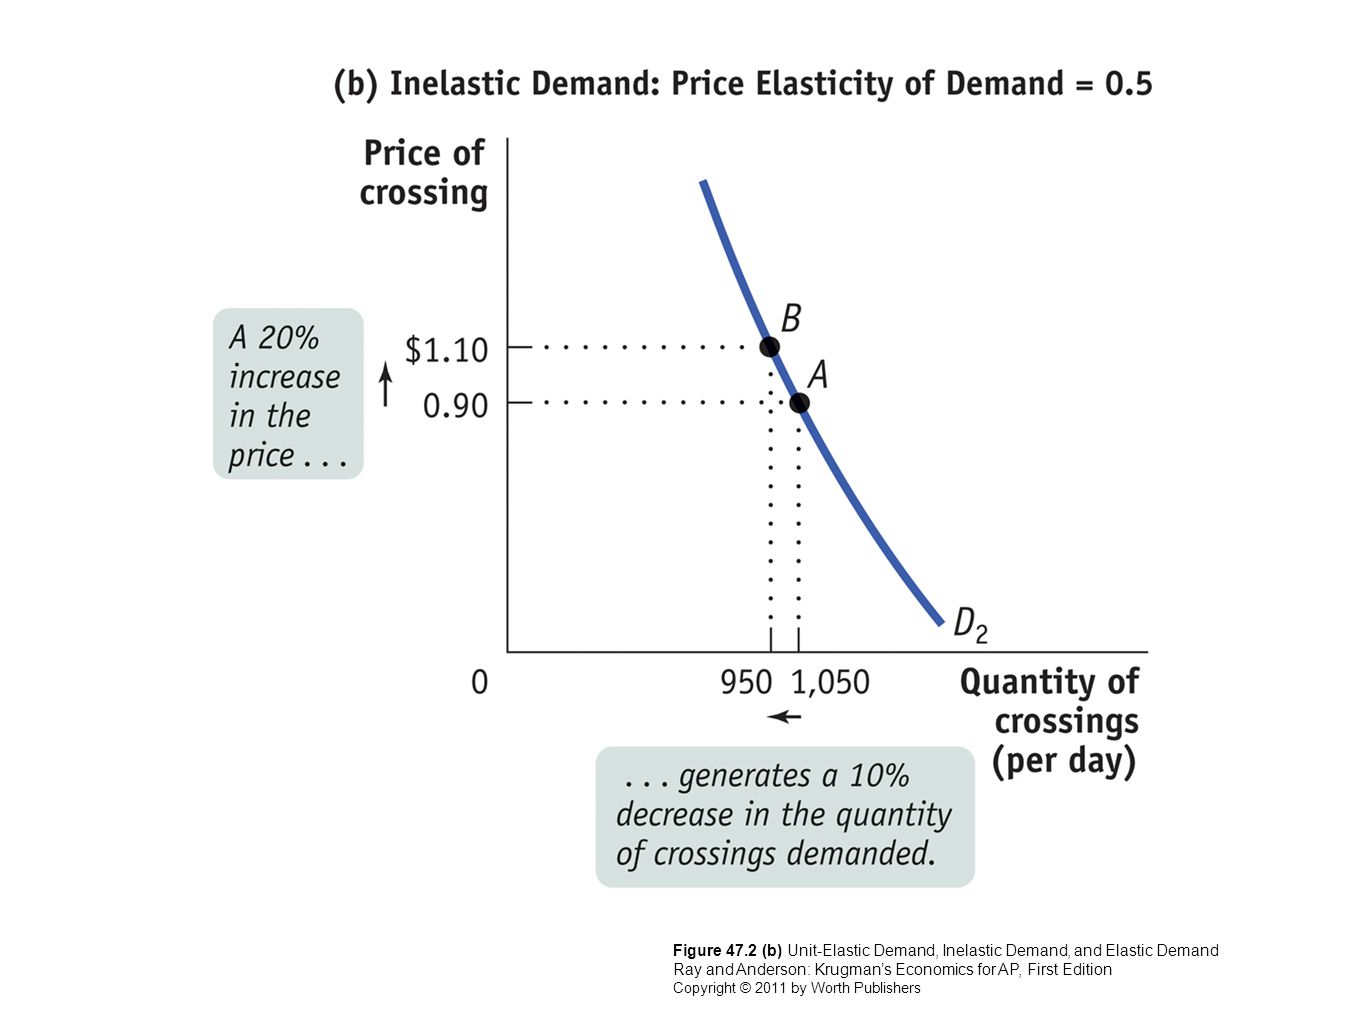 Figure 47.2 (b) Unit-Elastic Demand, Inelastic Demand, and Elastic Demand Ray and Anderson: Krugman's Economics for AP, First Edition Copyright © 2011 by Worth Publishers